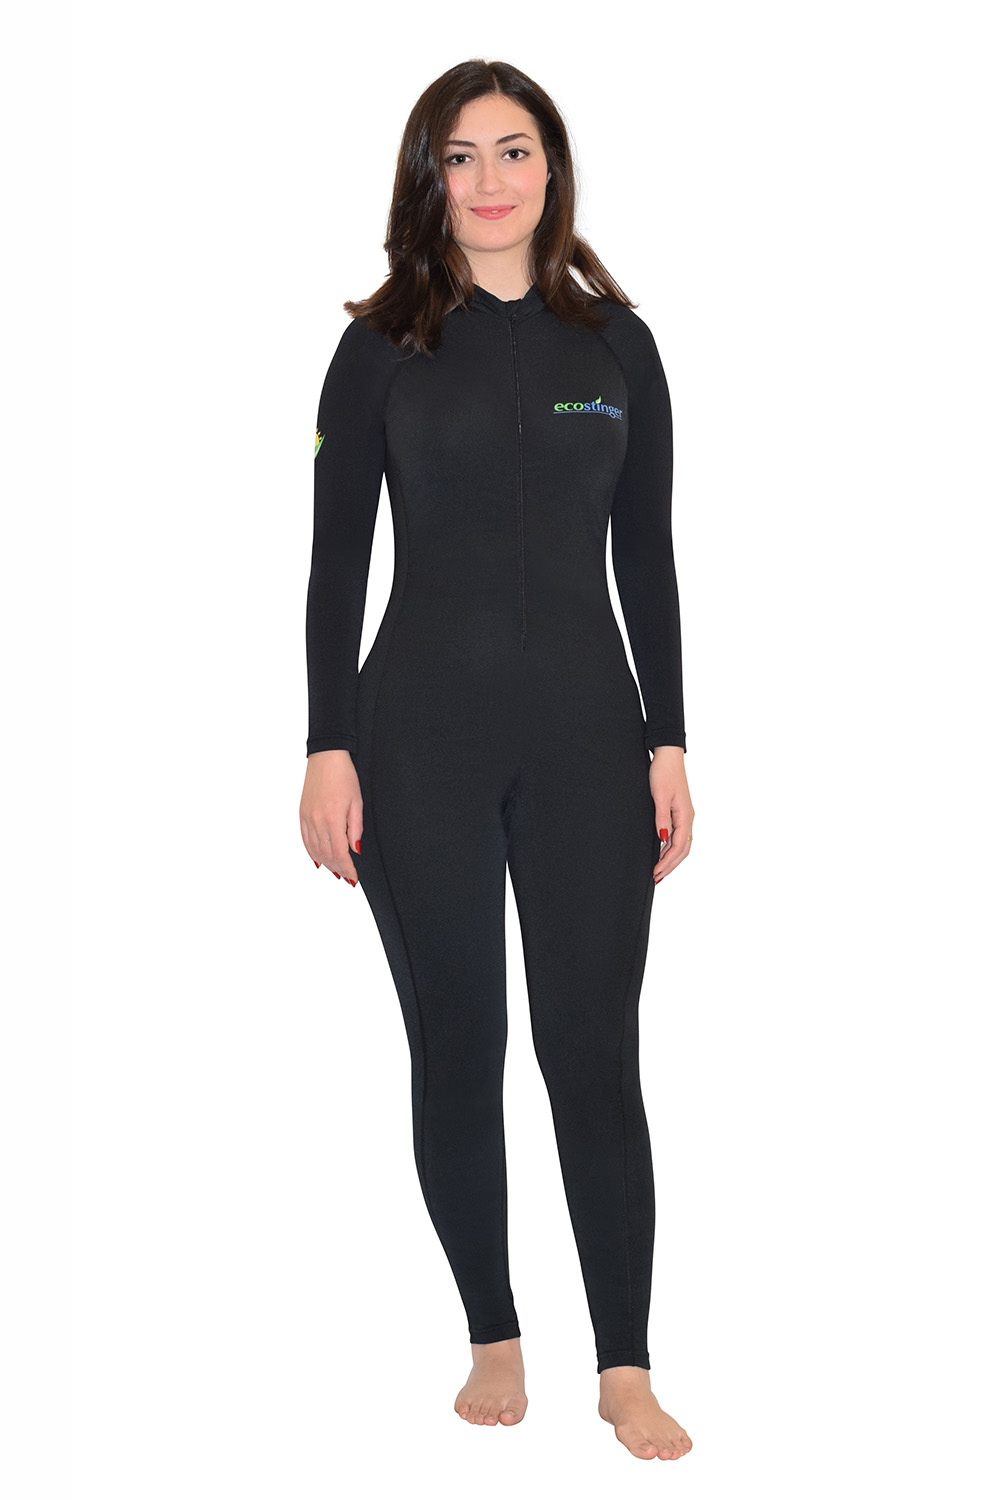 what is sun protection swimwear